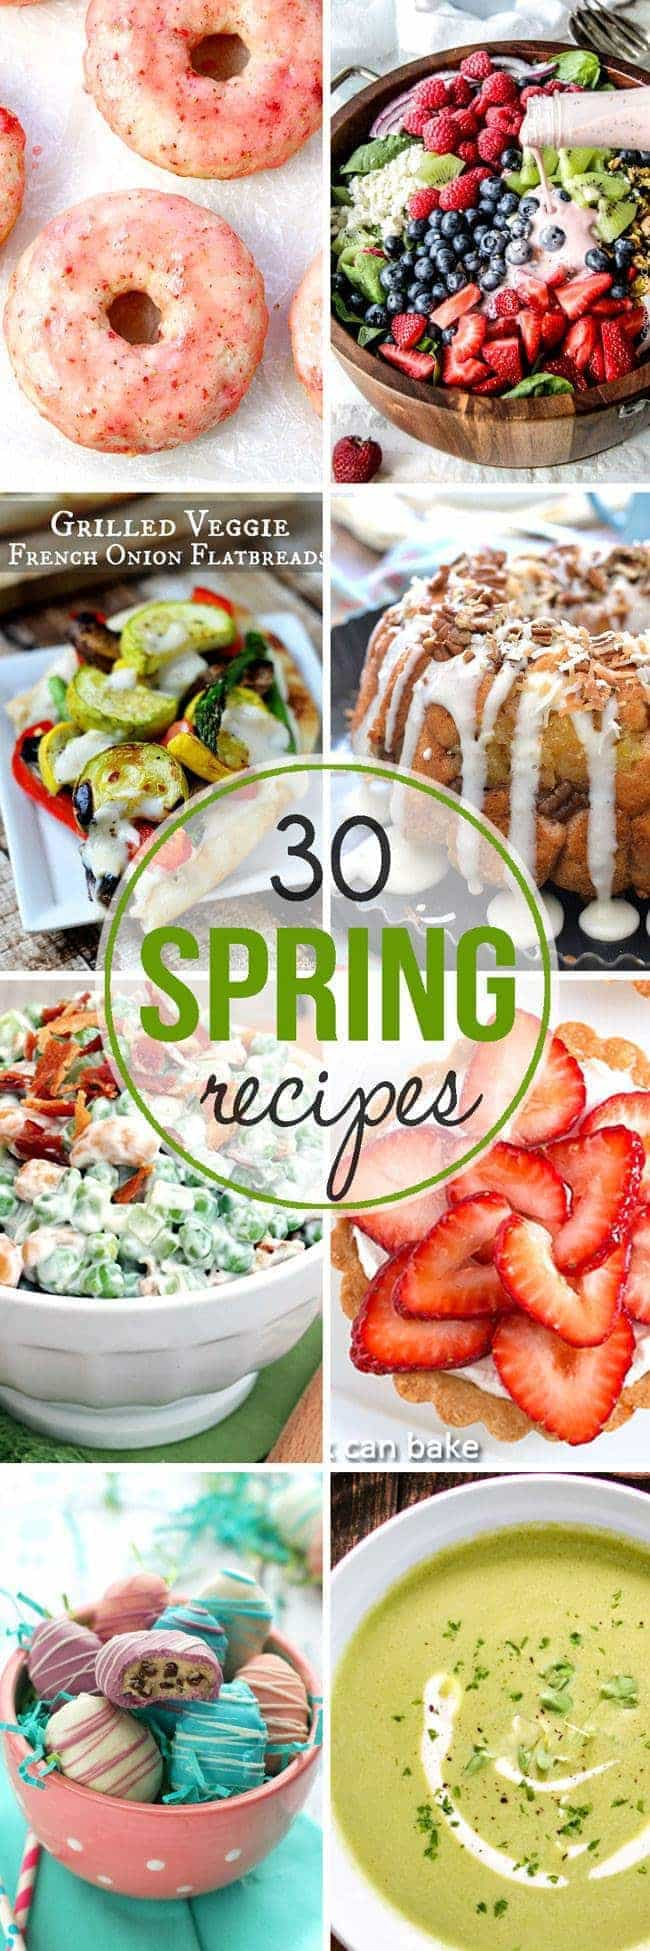 30 Spring Recipes - everything from soup to salad to breakfast and dessert - just in time for the start of spring!